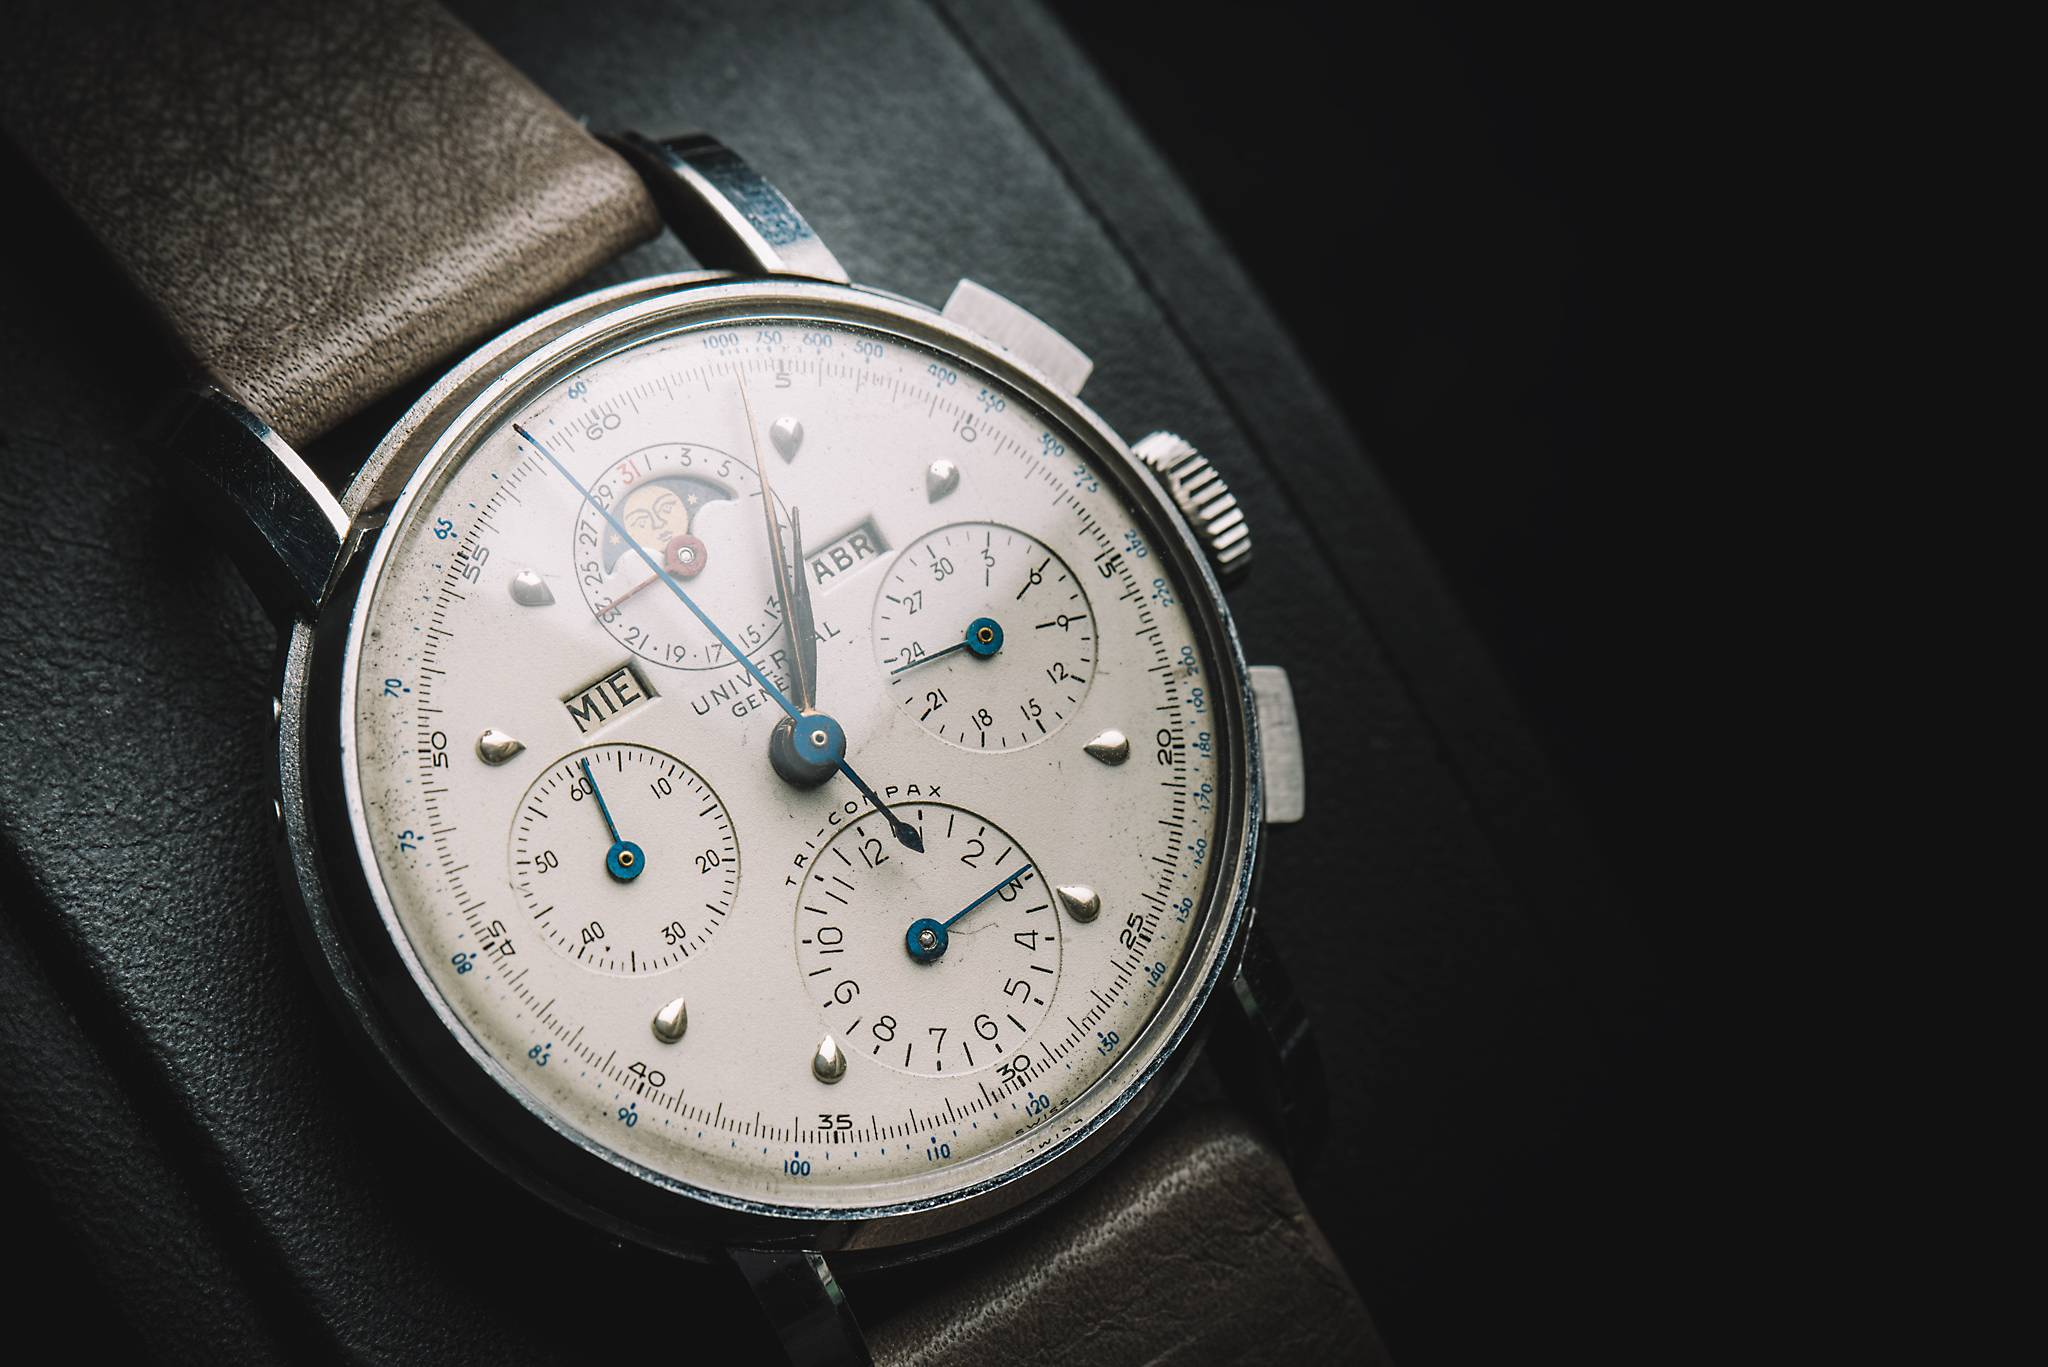 Universal Tri-Compax, 22541, Stainless steel, 1945 Side